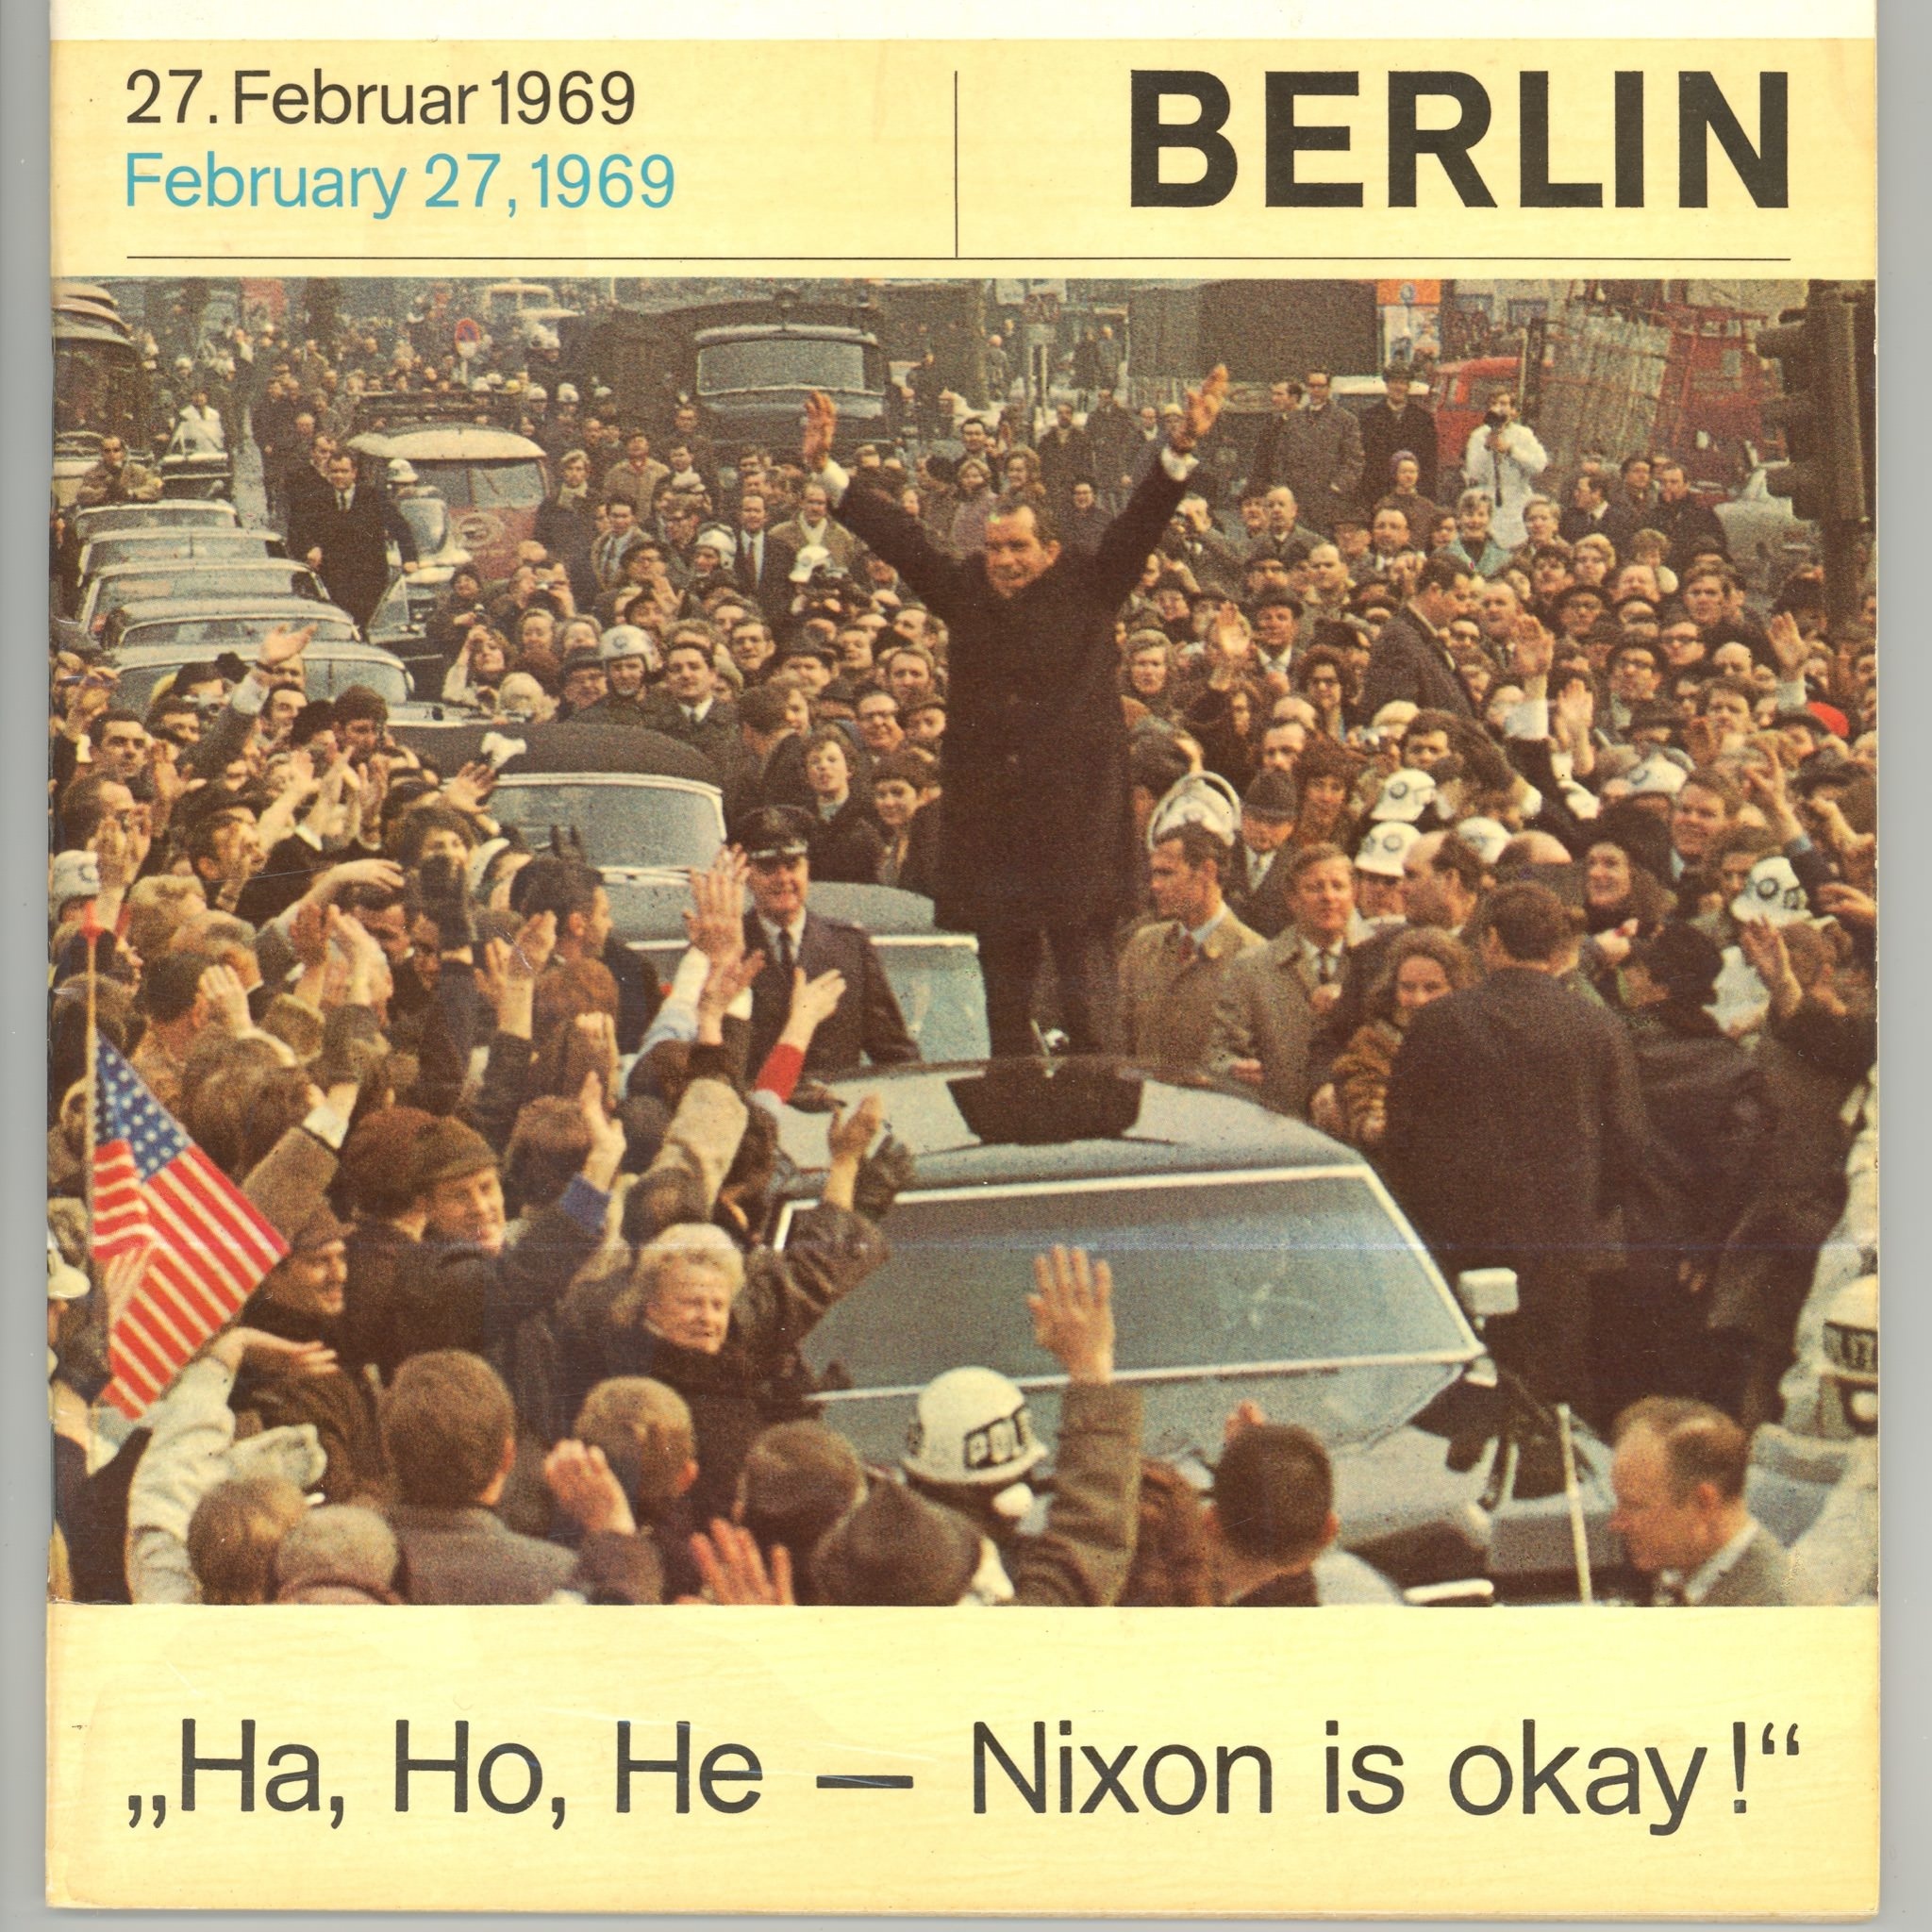 The cover of this booklet depicts U.S. President Nixon's triumphant 1969 visit to West Berlin.